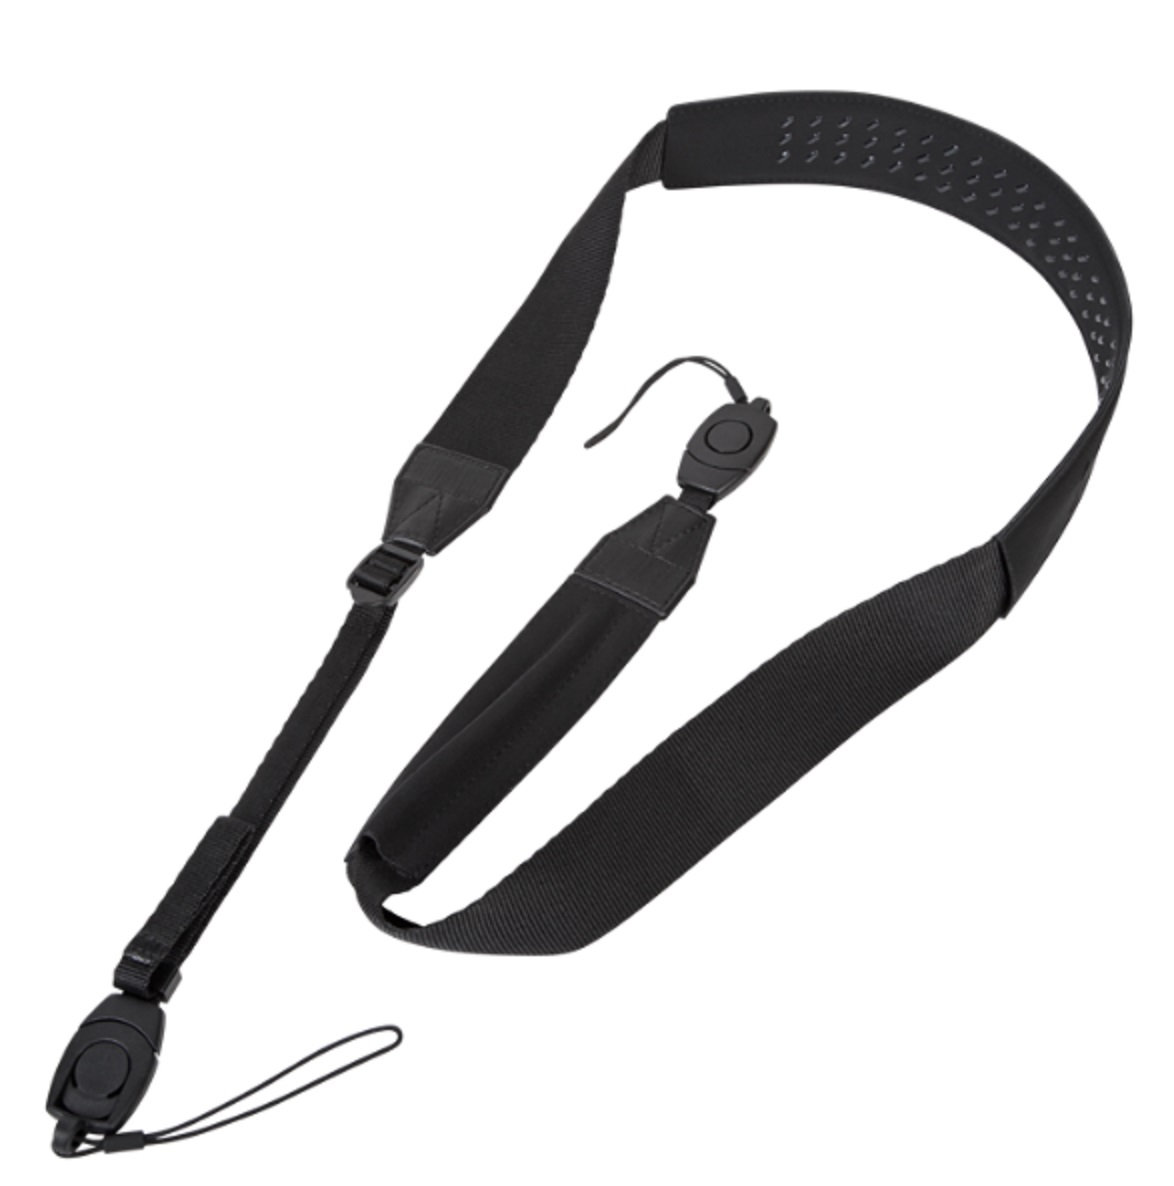 SafePort Rugged Case Shoulder Strap *FREE SHIPPING*